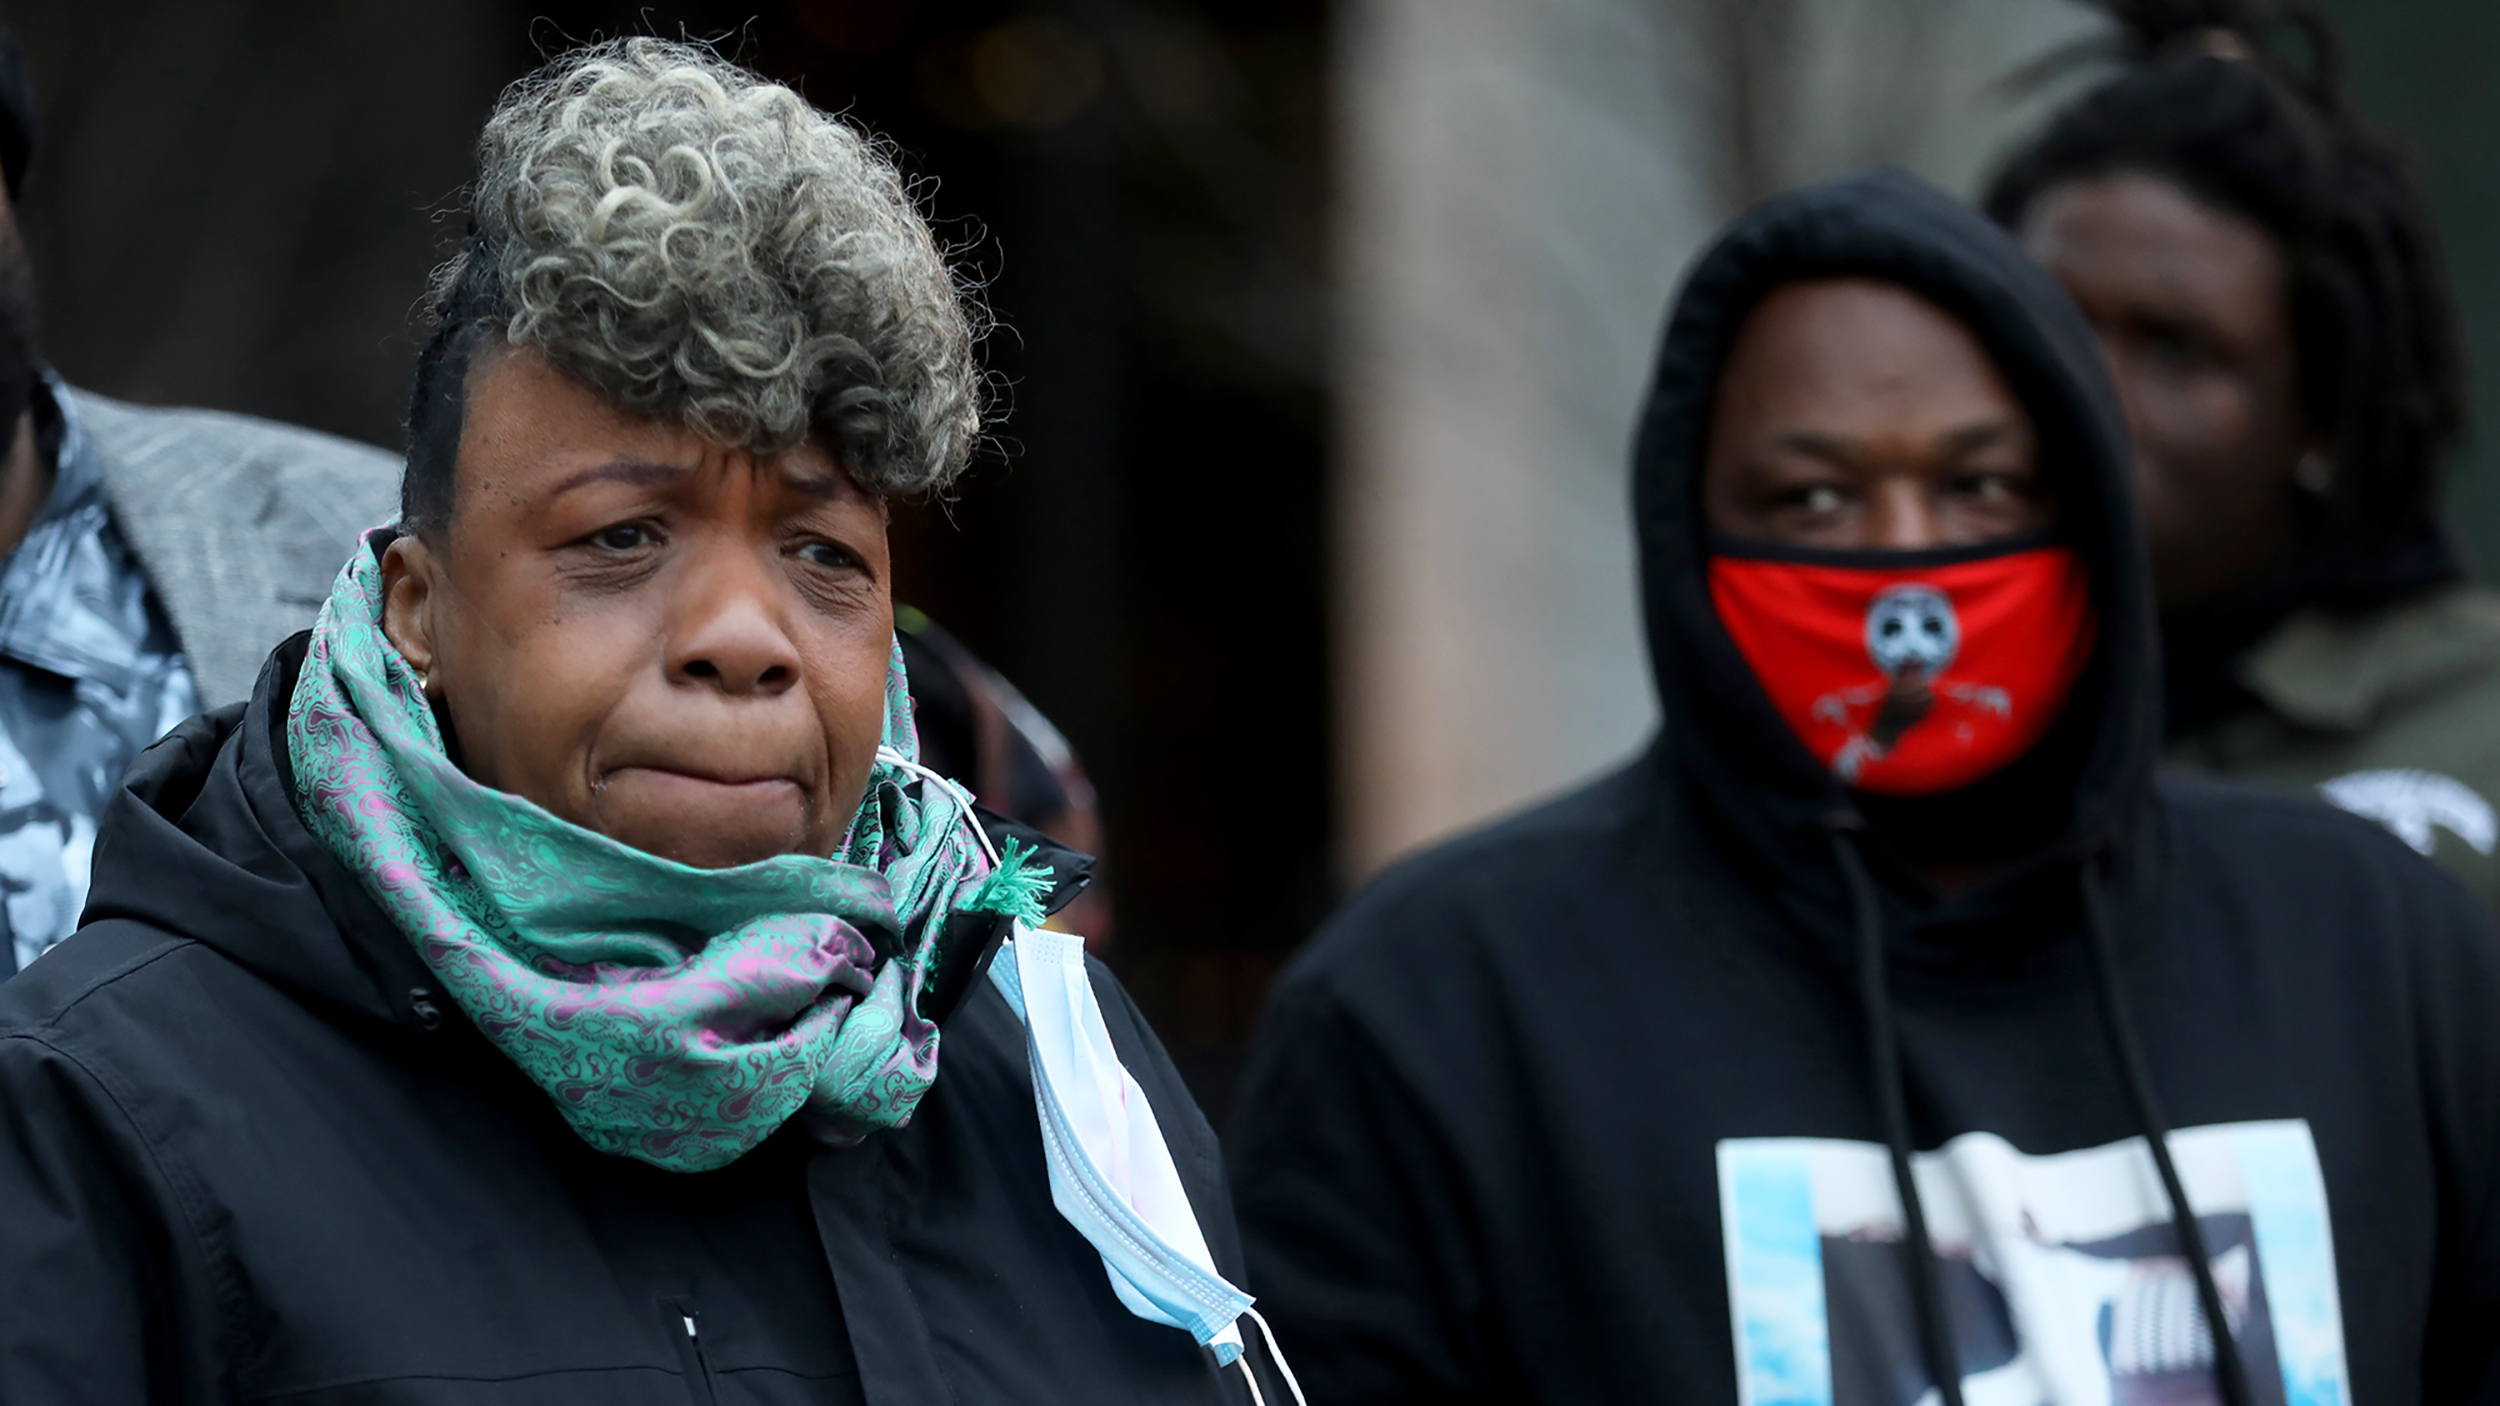 Eric Garner's mother says Caron Nazario, who was pepper-sprayed in a Virginia traffic stop, is part of her family